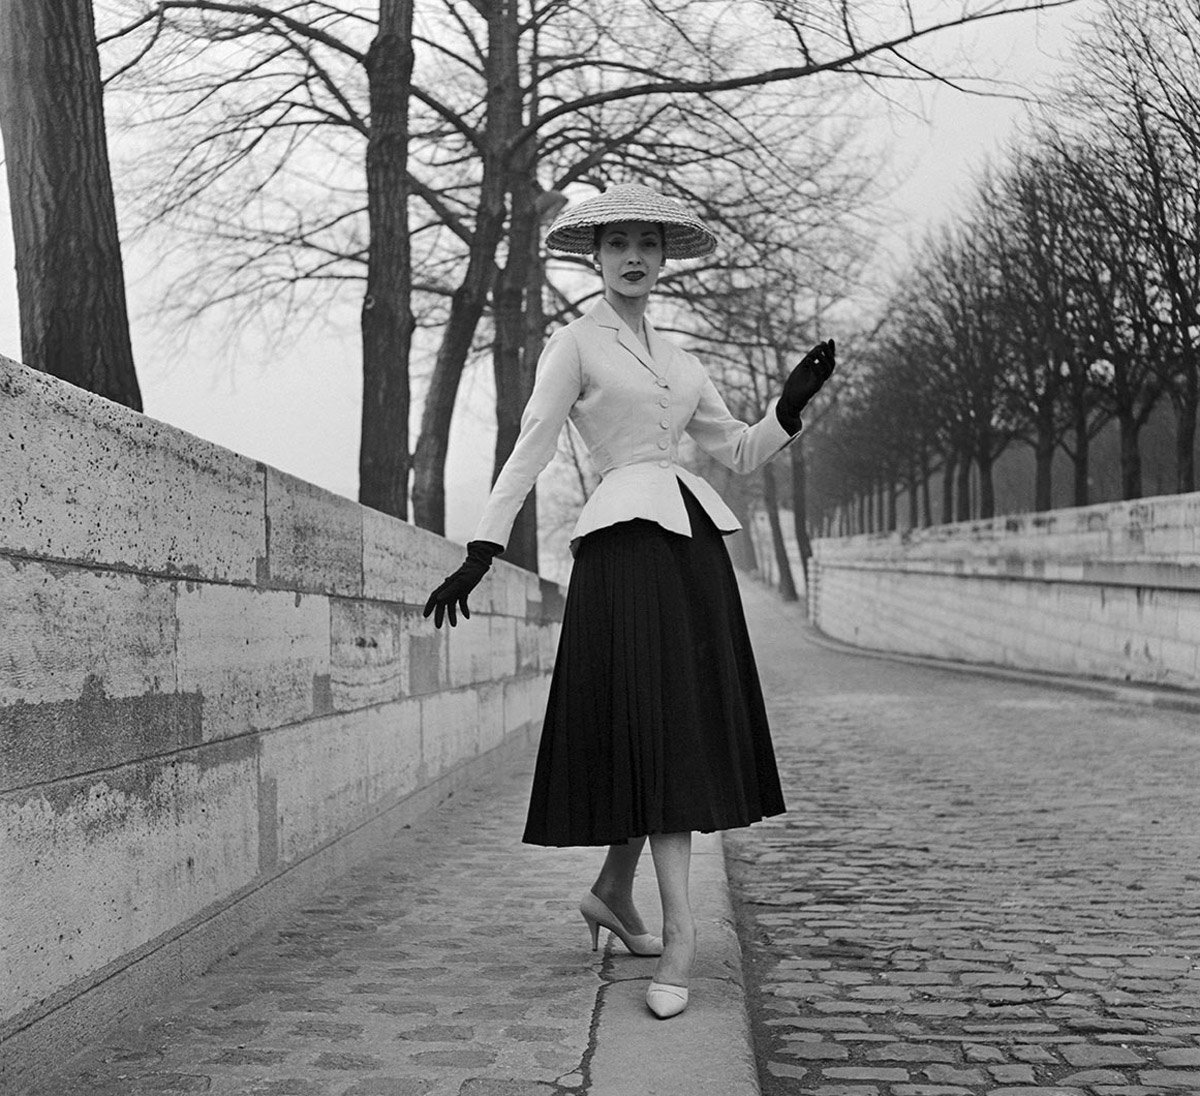 Black and white photograph of the Christian Dior New Look on a model posing in a tree-lined street